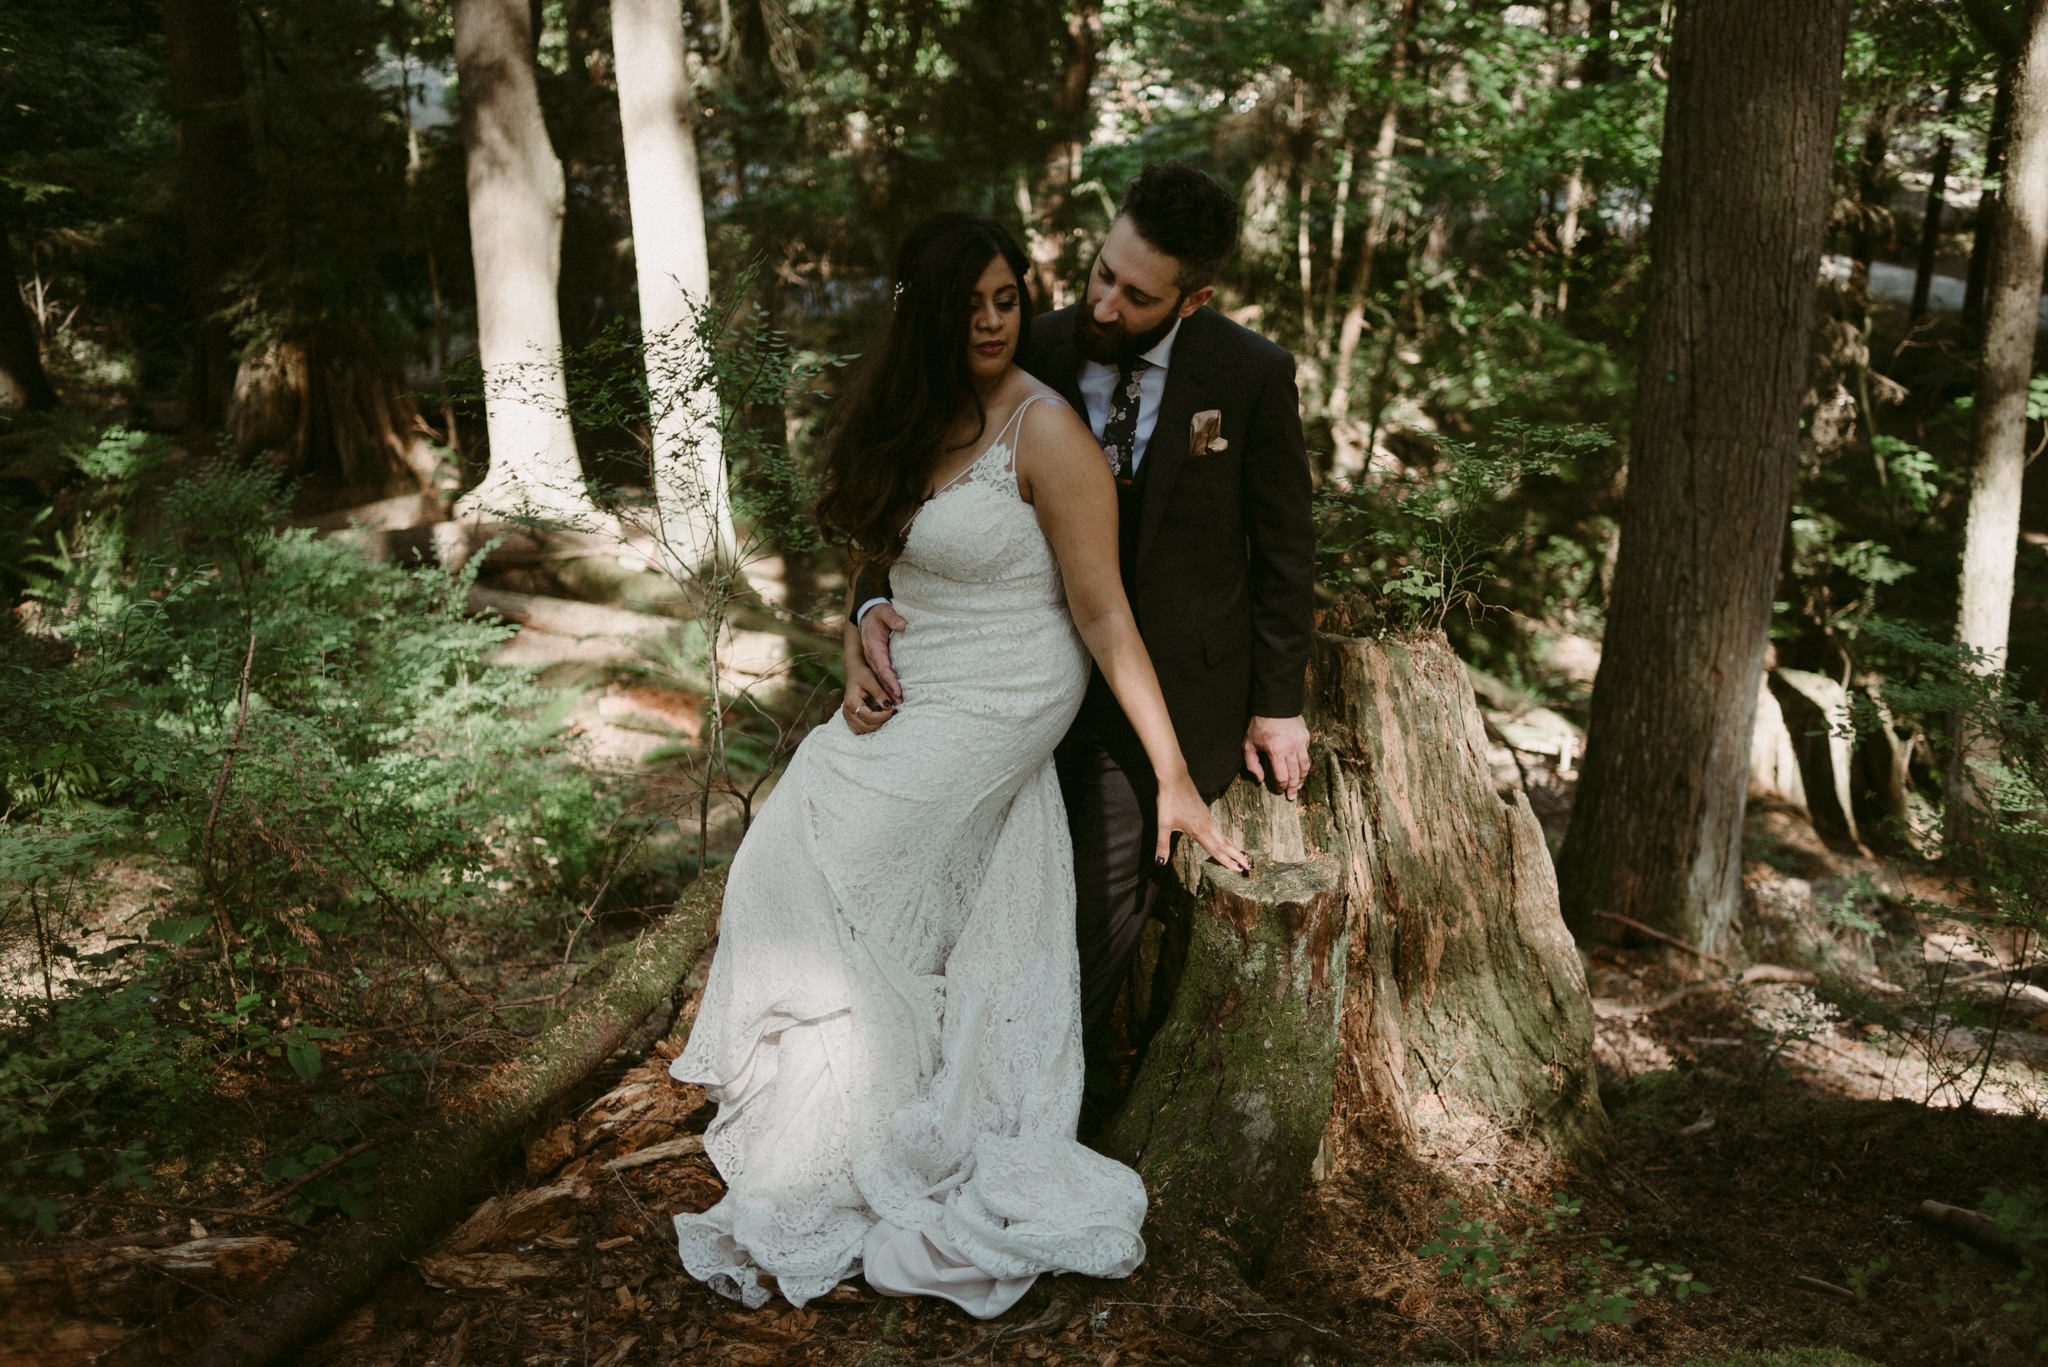 bride and groom sitting on tree stump on forest